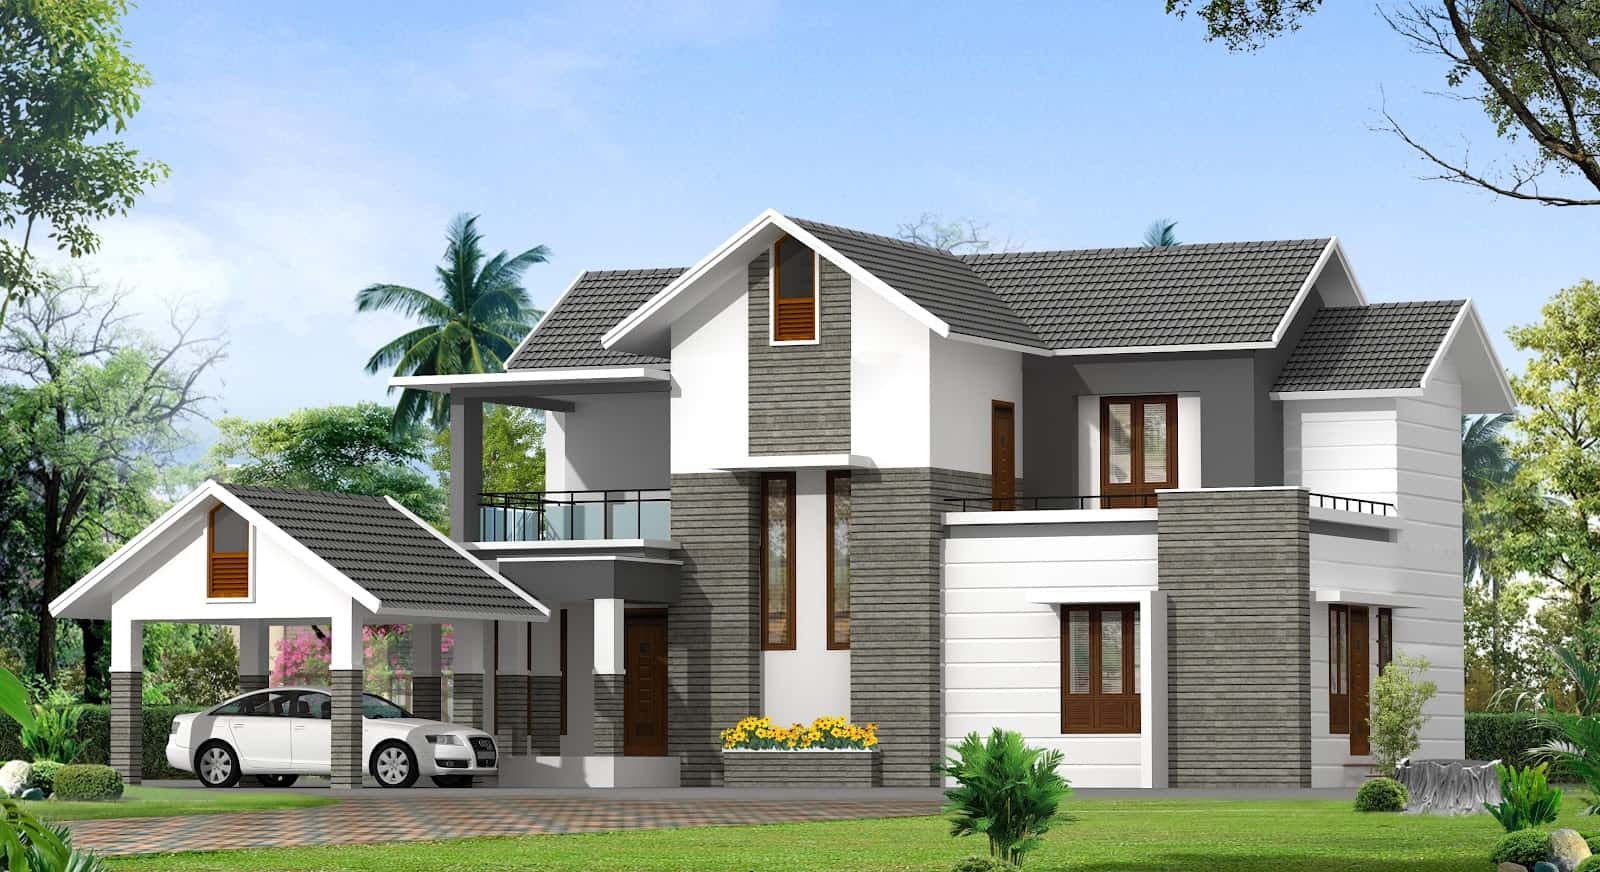 1500 Sq Ft House Plans For Homes also 2 Story Farmhouse Designs Under 1200 Sq Ft additionally Simple House Plans 3000 Square Feet also Floor For House Plan 320 Square Feet furthermore 1200 Square Feet Open Floor Plans. on 4 bedroom floor plans under 2200 sq feet